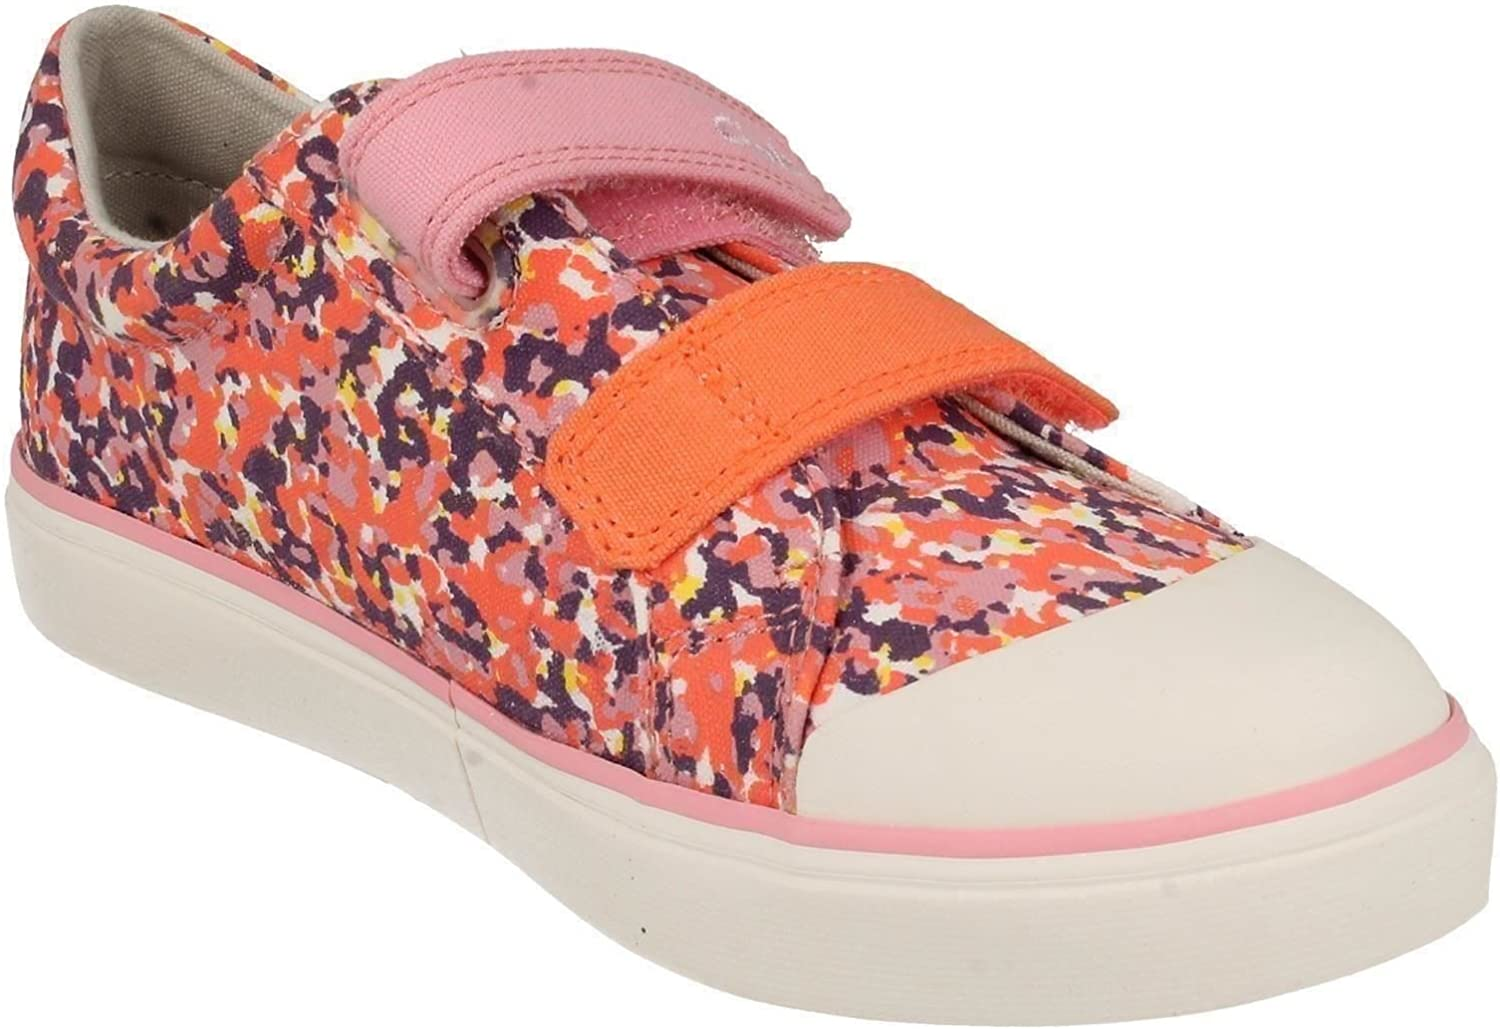 US Size 13W Pink Canvas Clarks Girls Summer Canvas Pumps Brill Ice EU Size 31 UK Size 12.5G